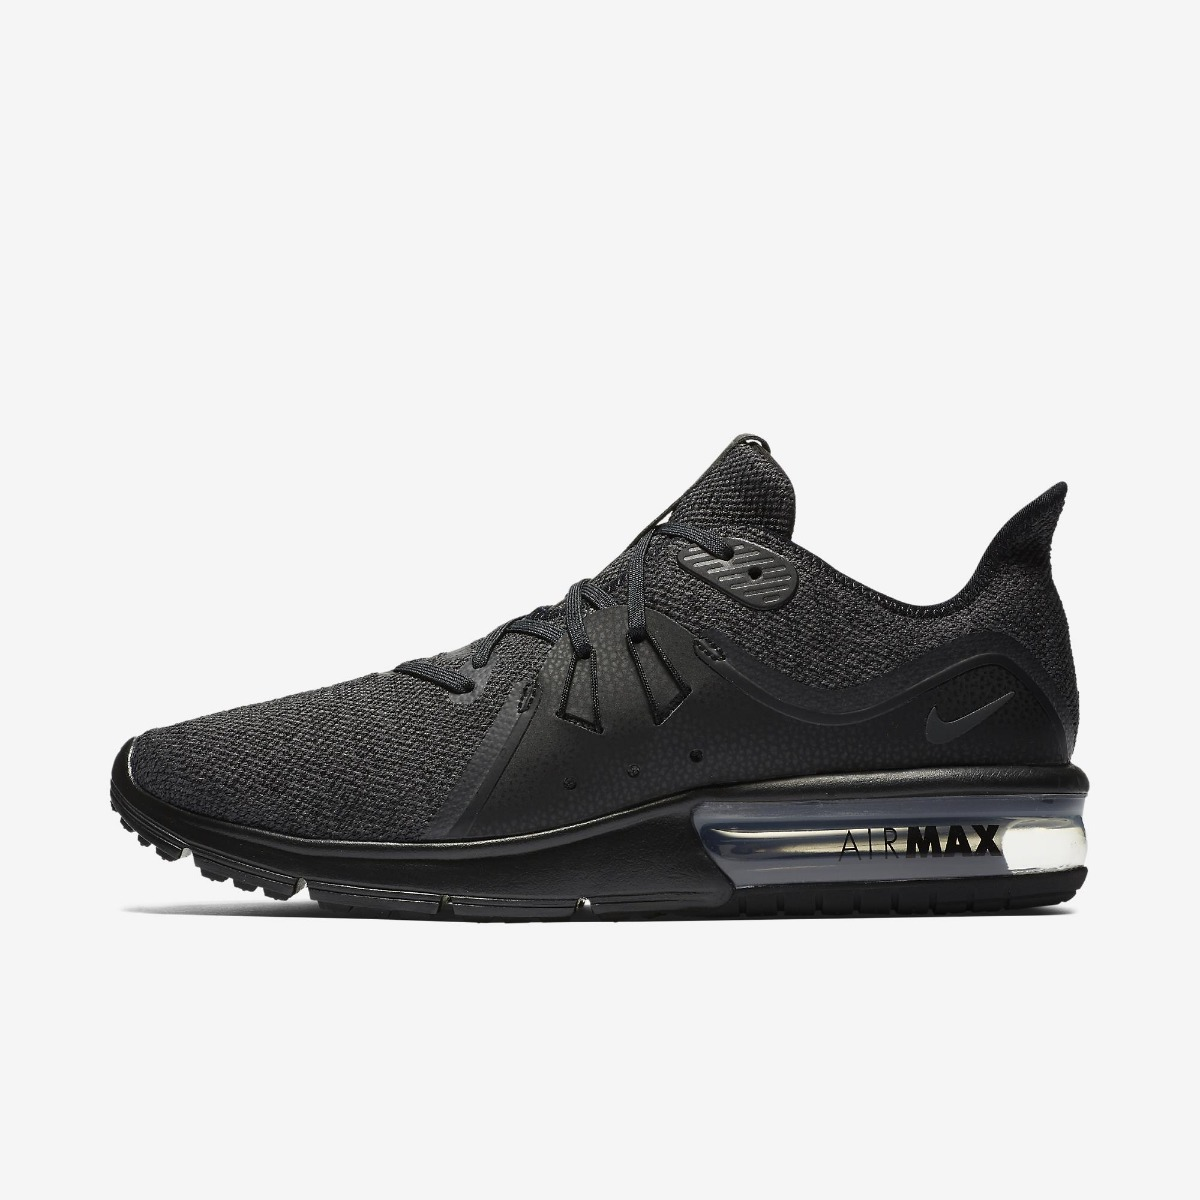 tênis nike air max sequent 3 masculino original. Carregando zoom. ee647e248a8f8